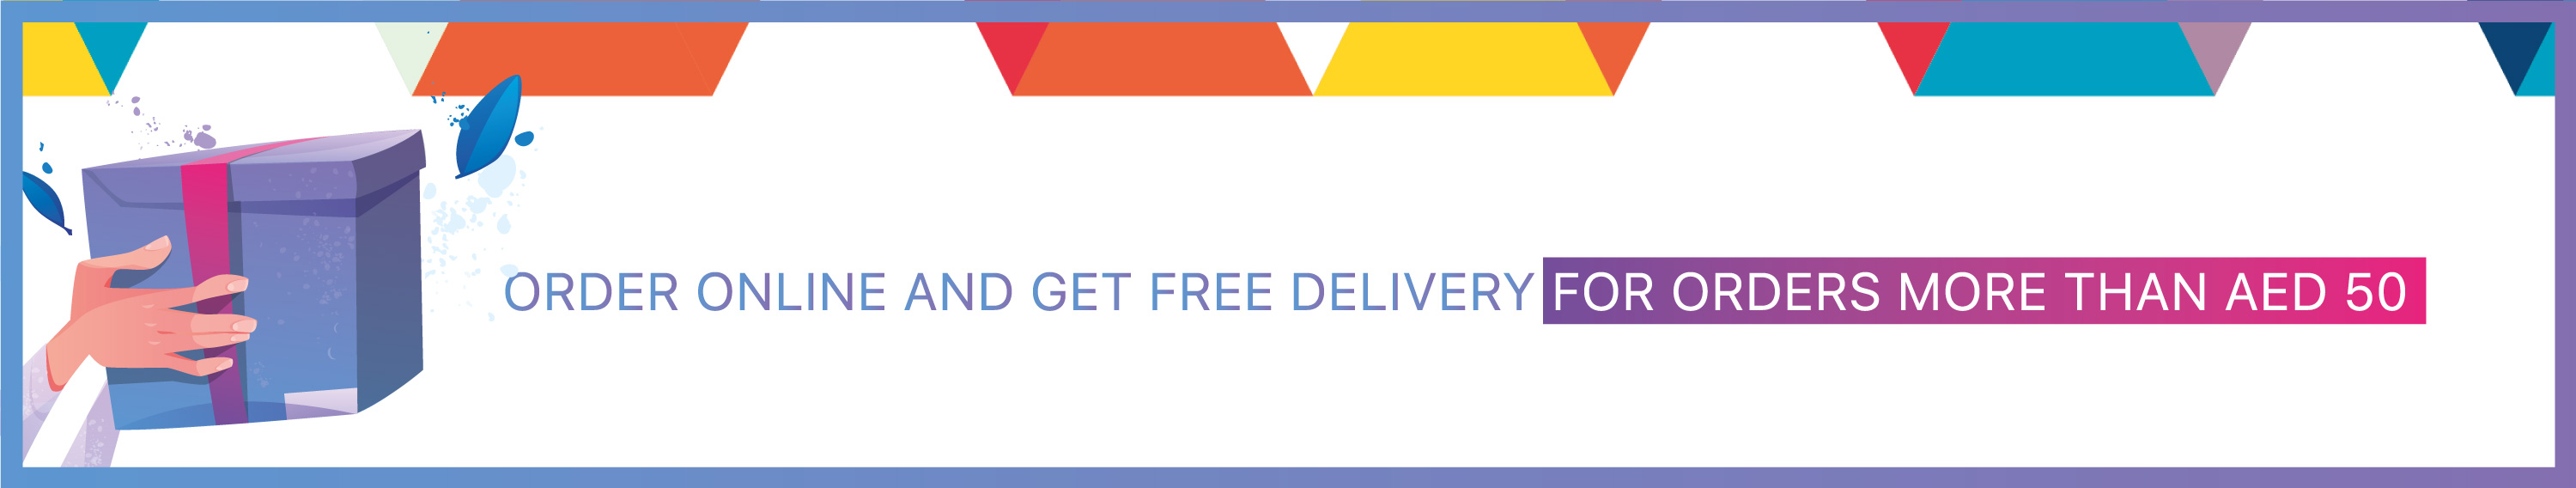 Free delivery over 50AED Homepage Banner